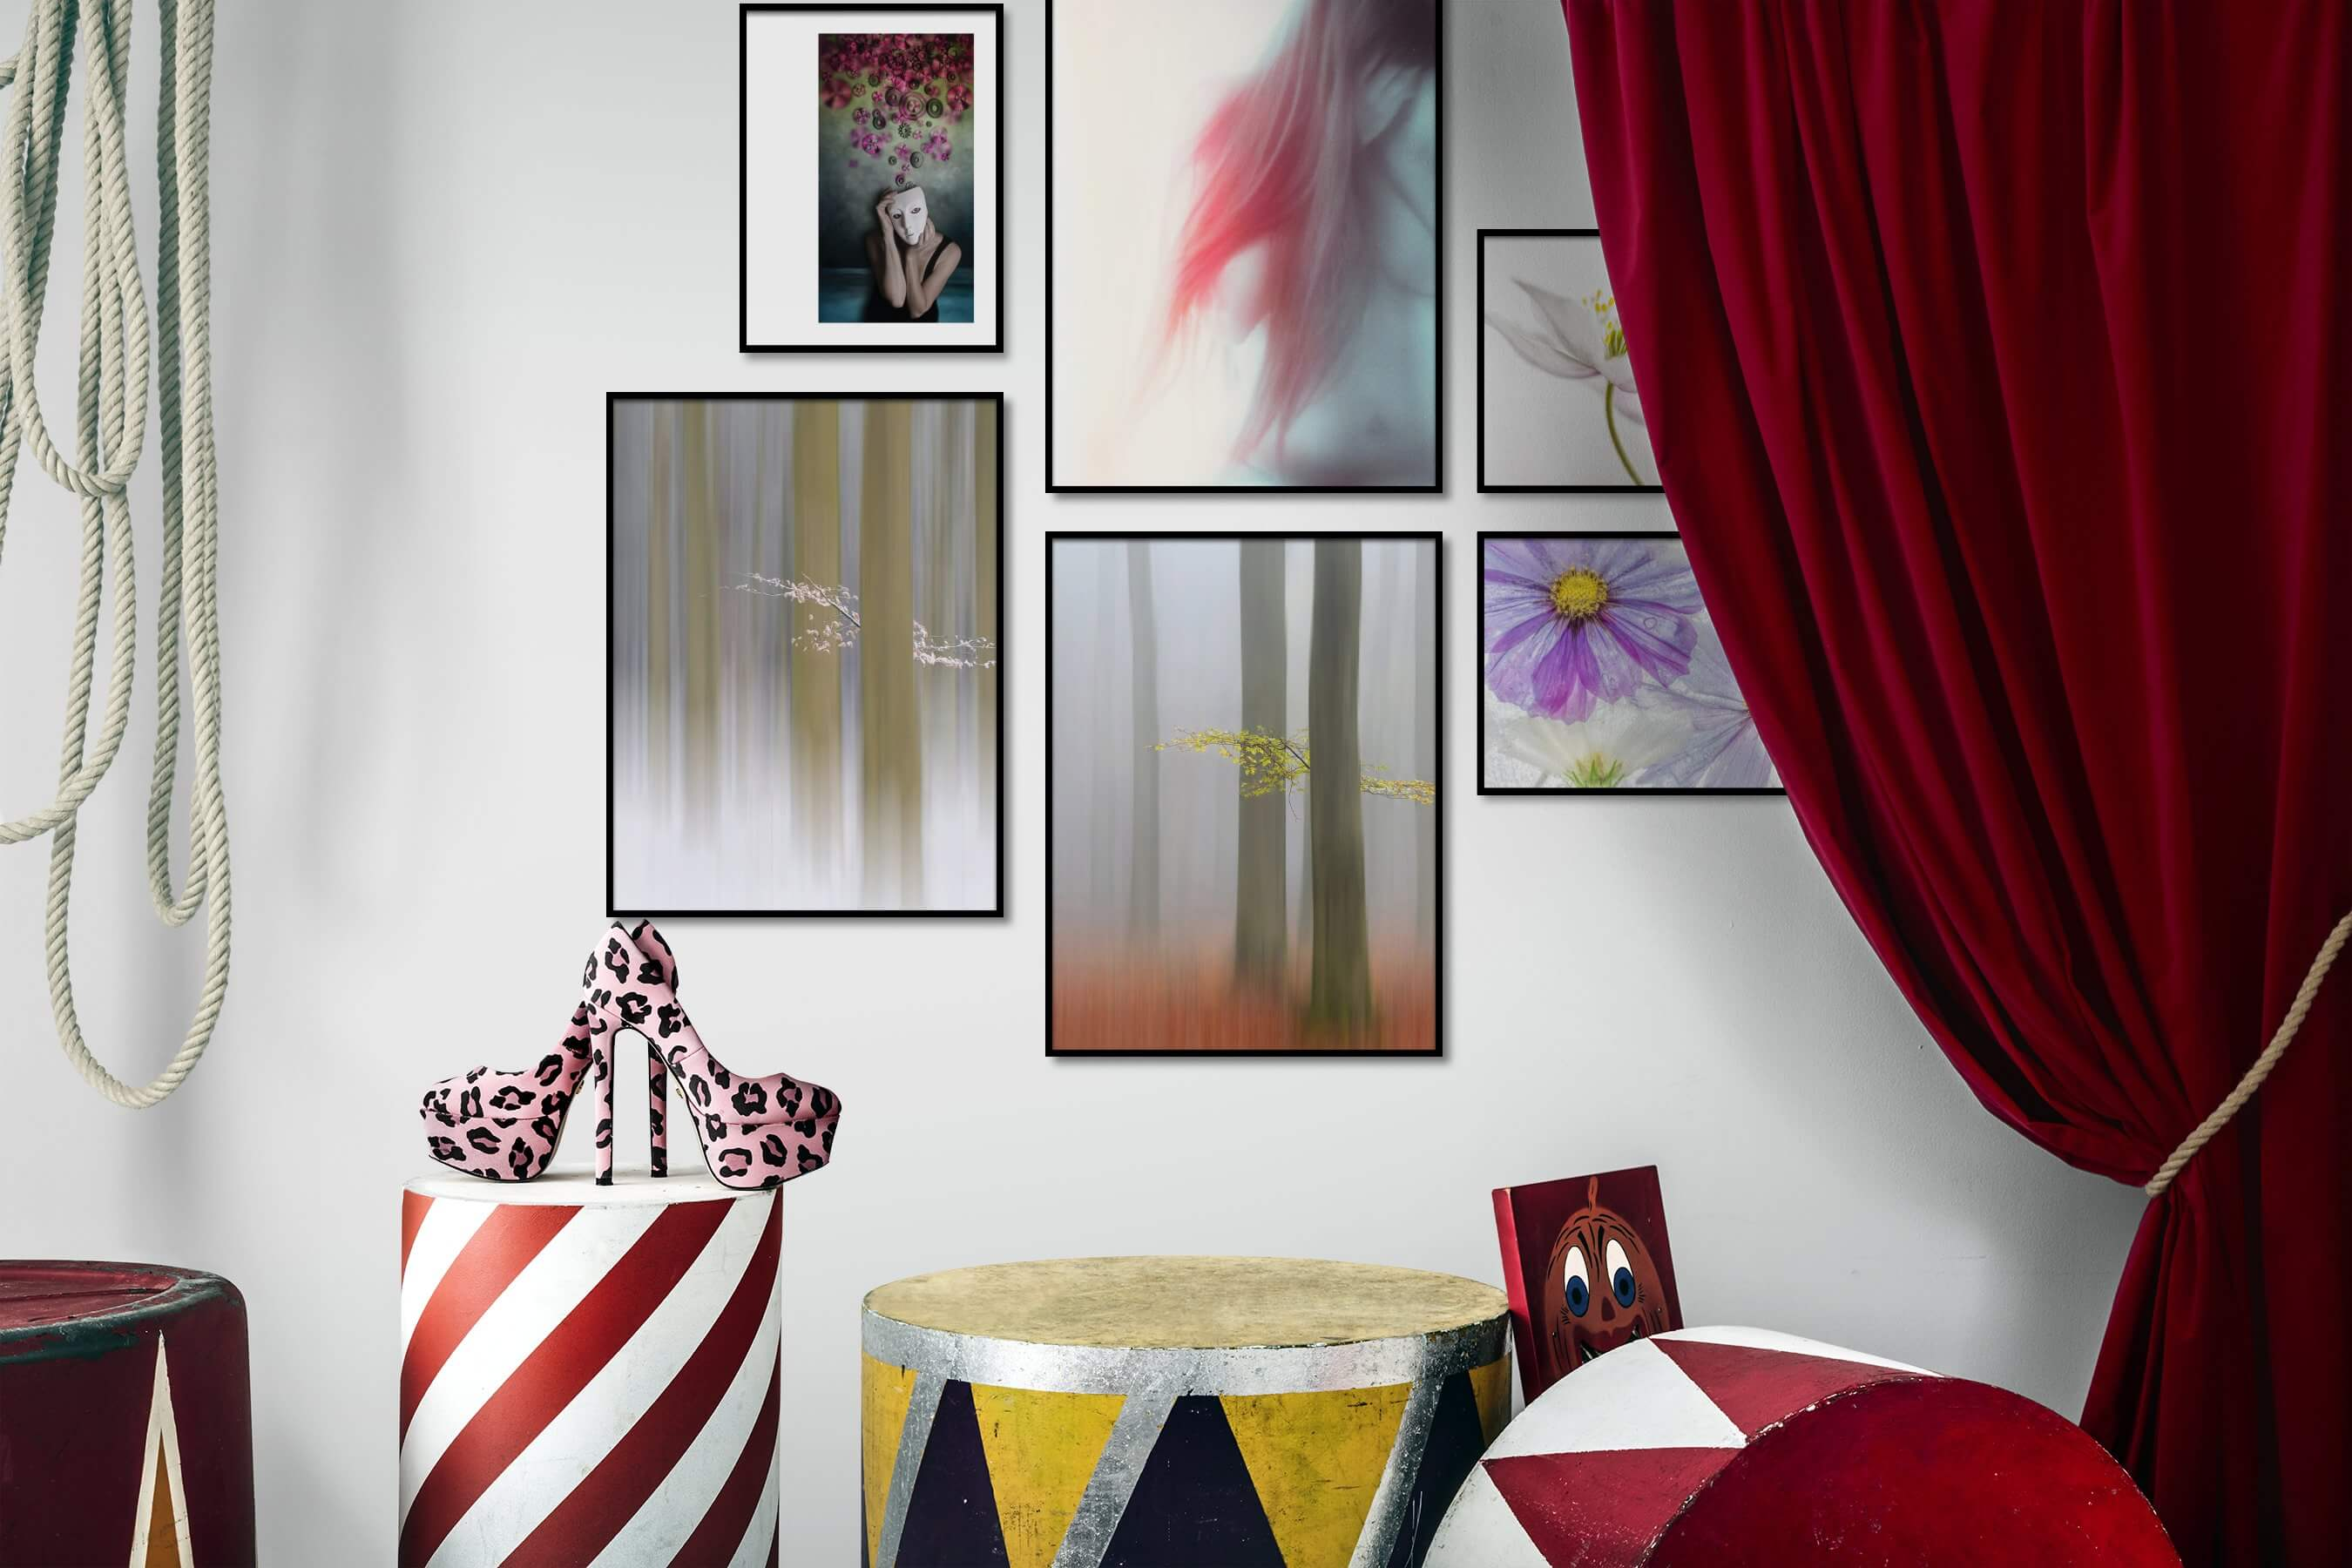 Gallery wall idea with six framed pictures arranged on a wall depicting Artsy, For the Moderate, Nature, For the Minimalist, and Flowers & Plants